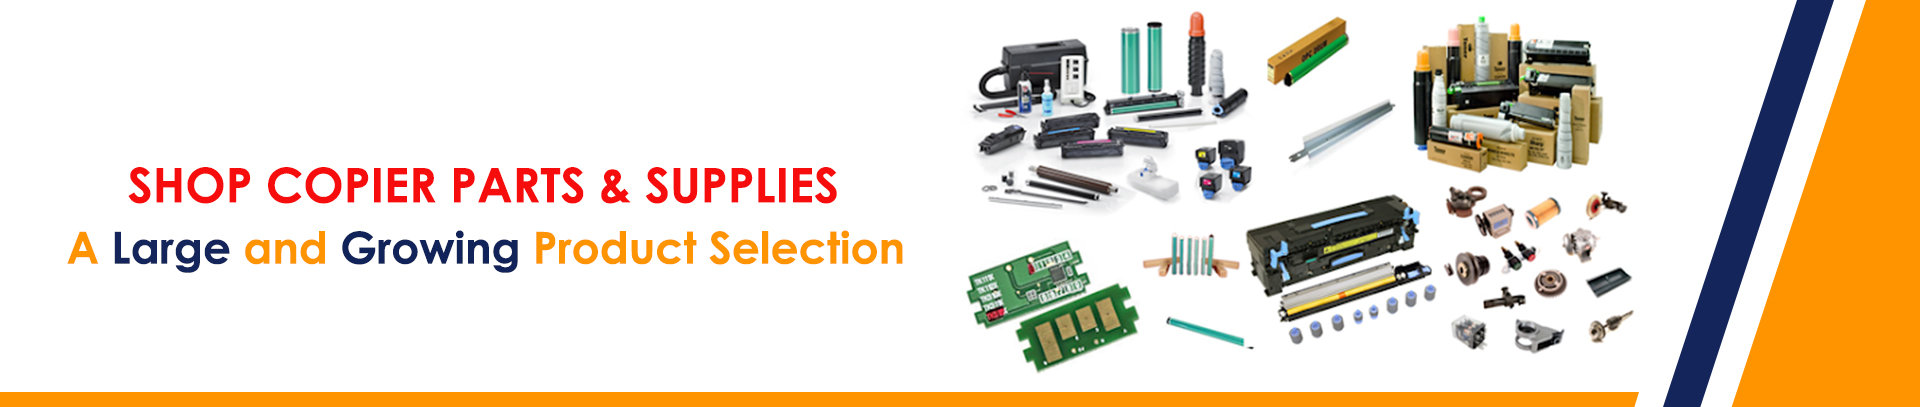 LM-Printer-Parts-Cover.jpg